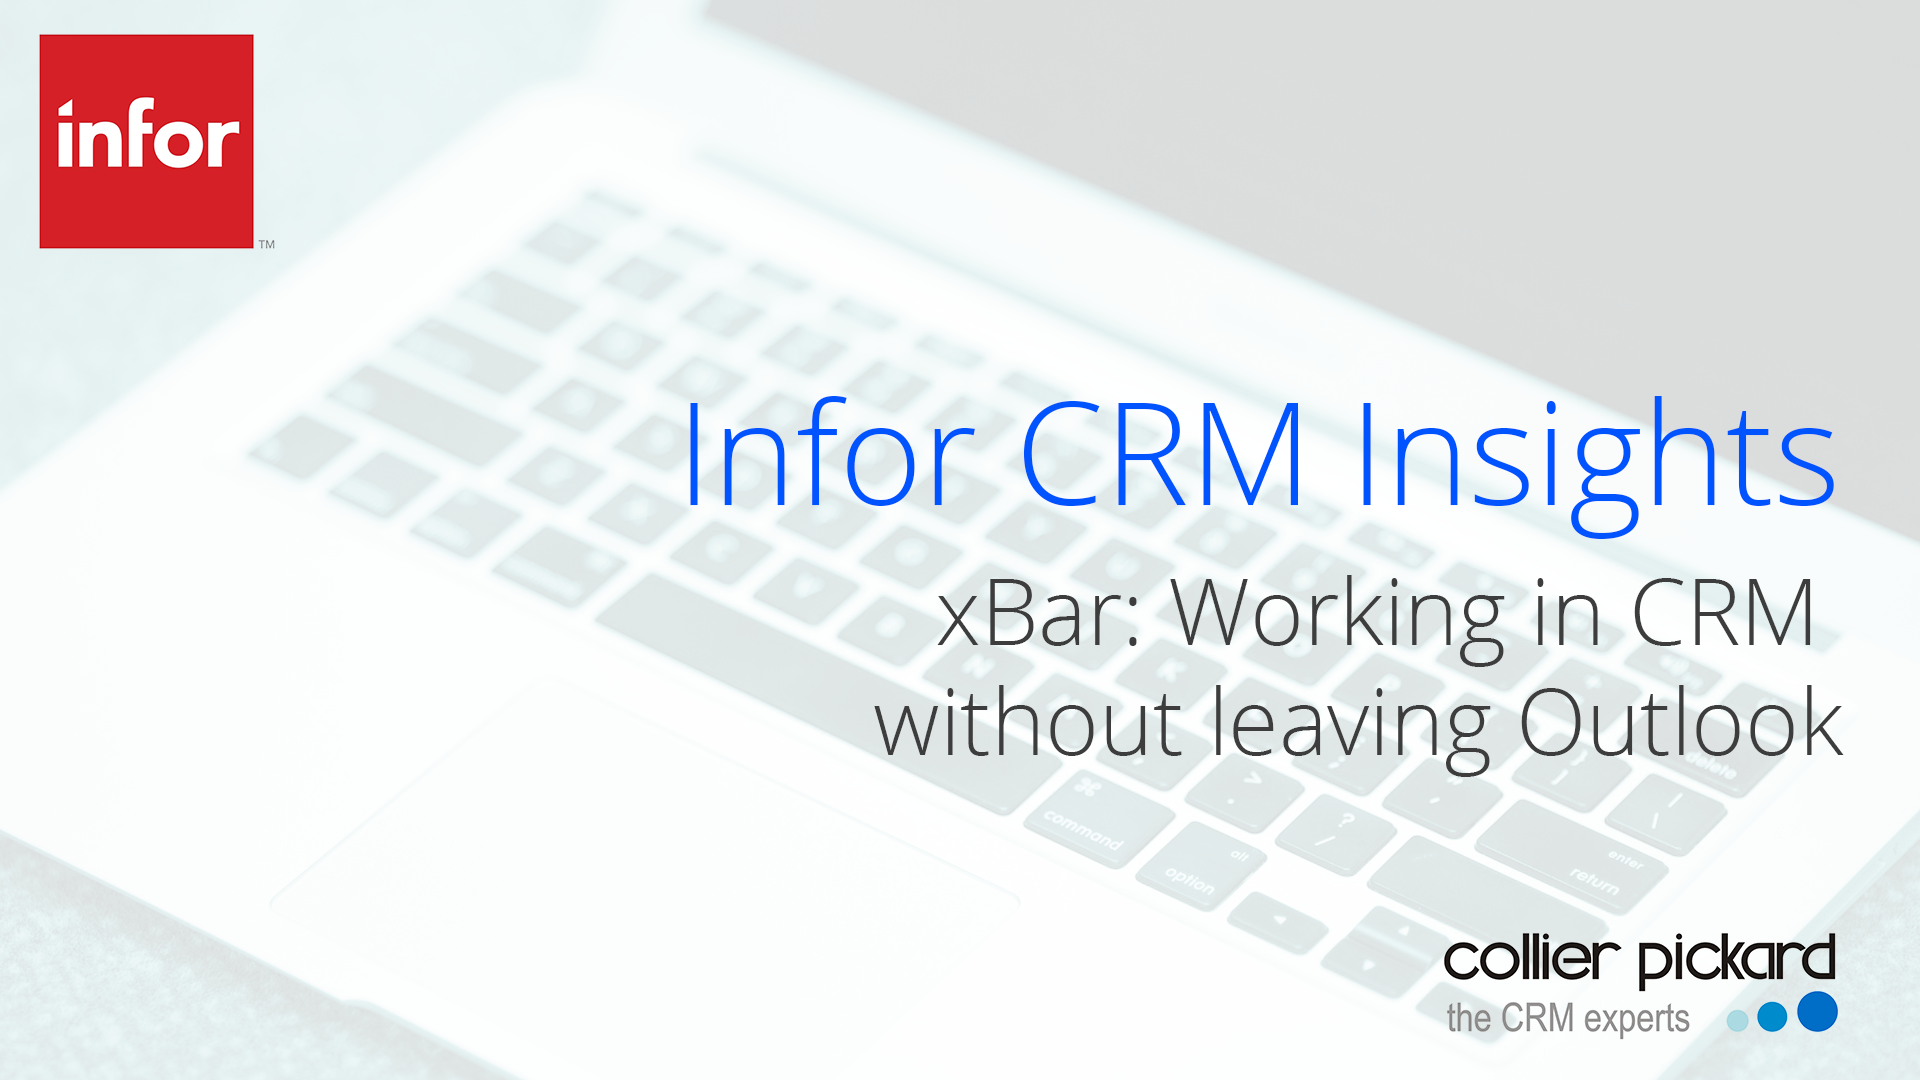 infor-crm-xbar-title.png